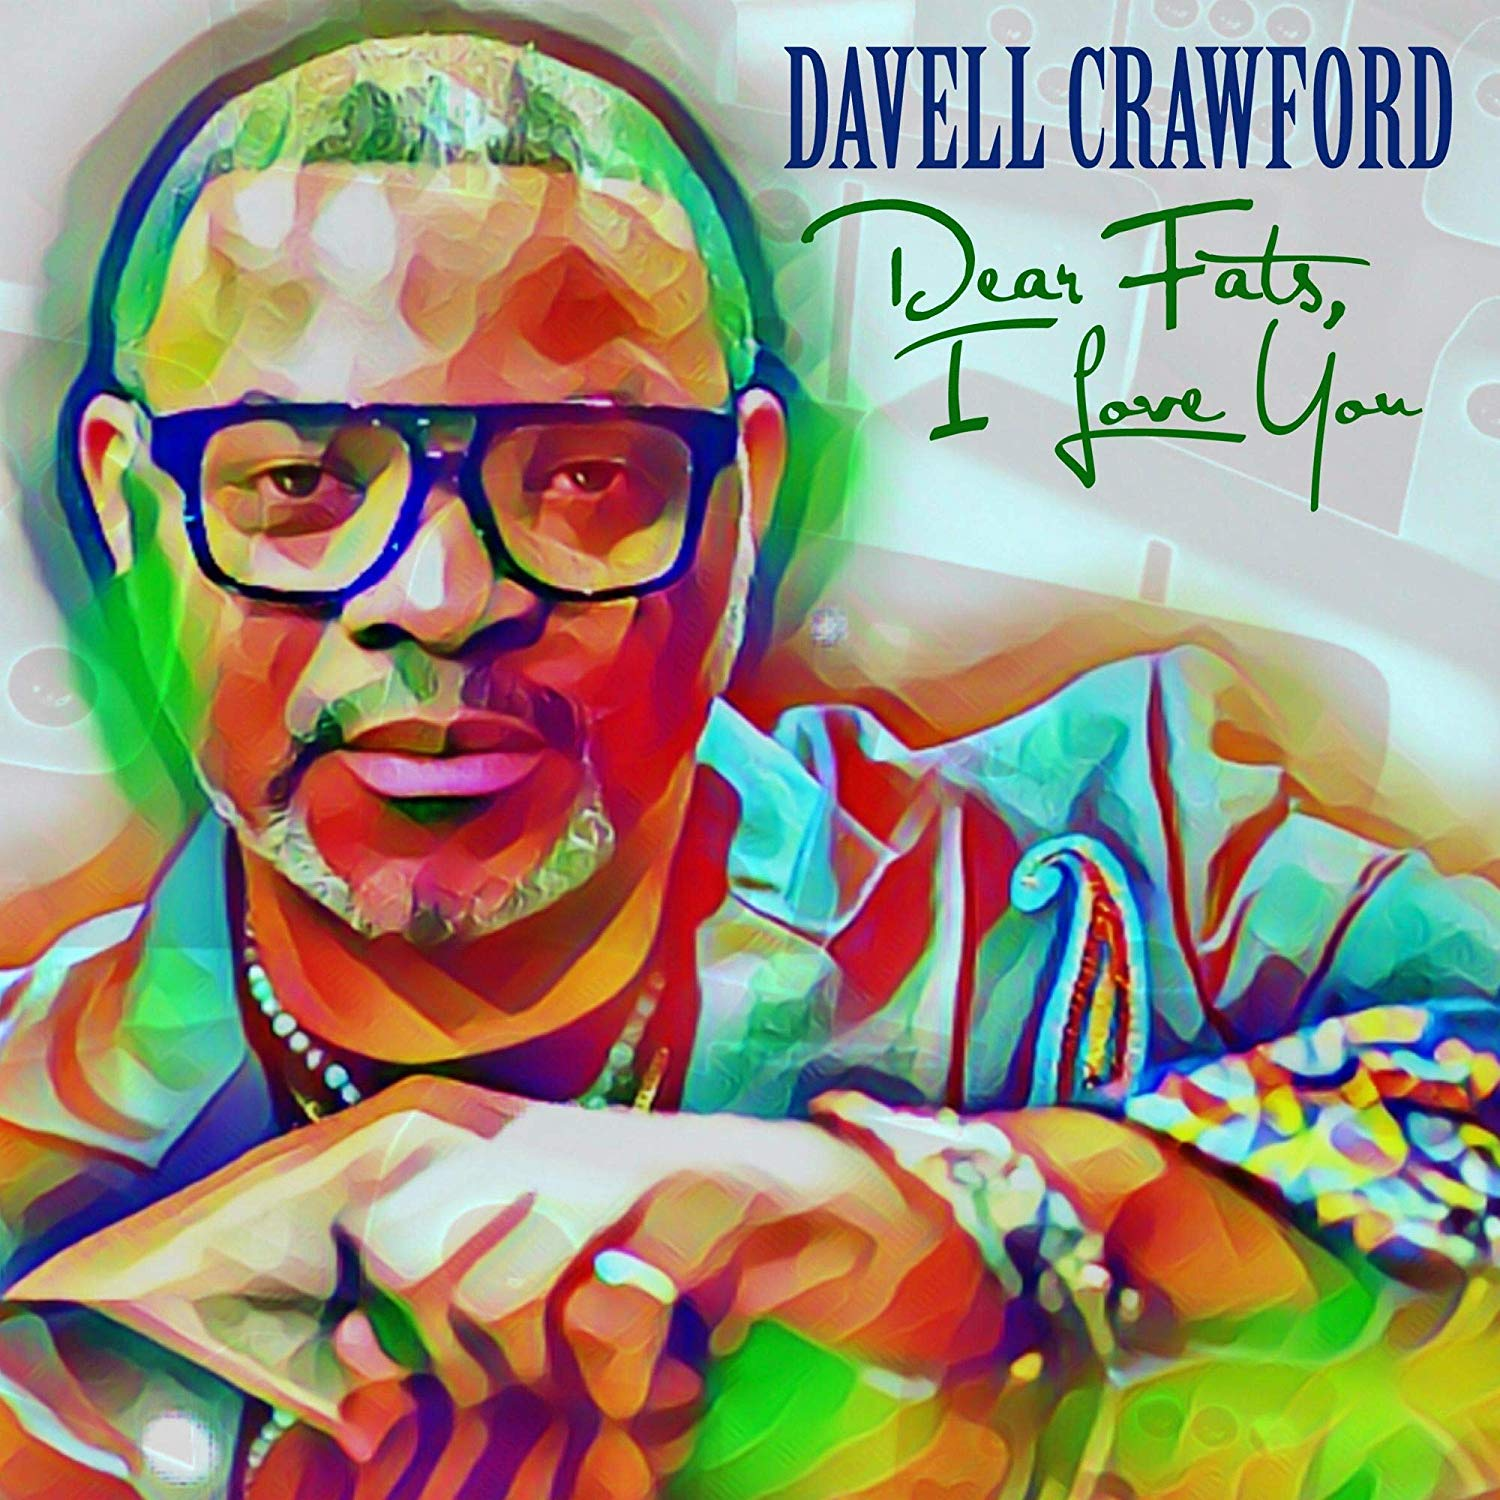 DAVELL CRAWFORD - Dear Fats, I Love You cover